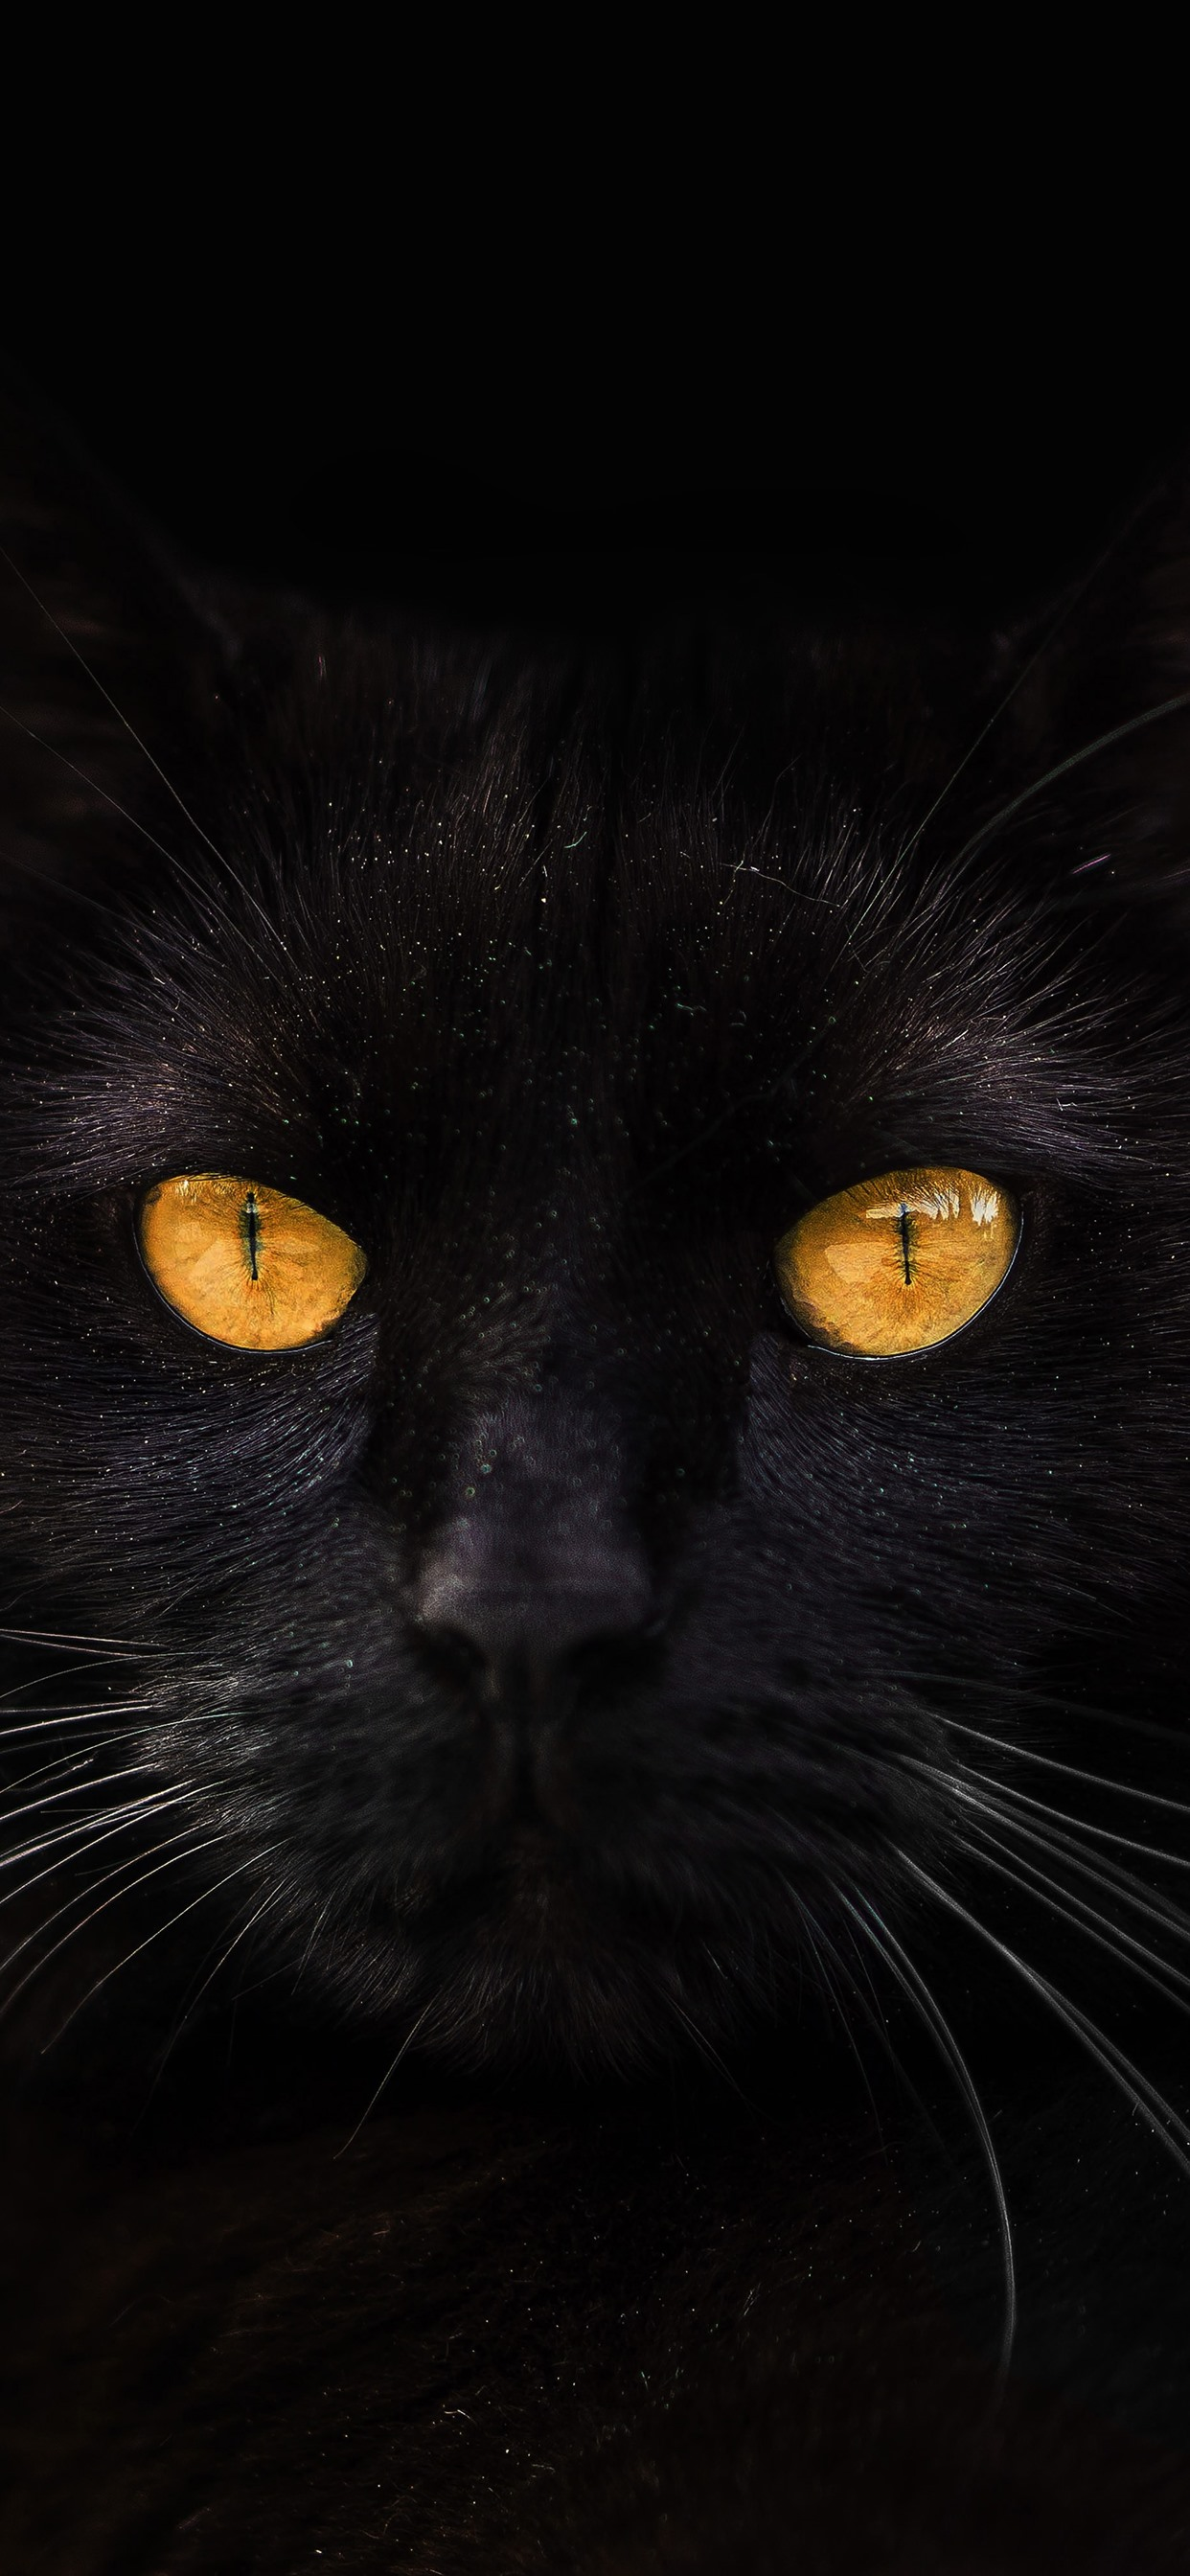 Black Cat Yellow Eyes Darkness 1242x2688 Iphone 11 Pro Xs Max Wallpaper Background Picture Image